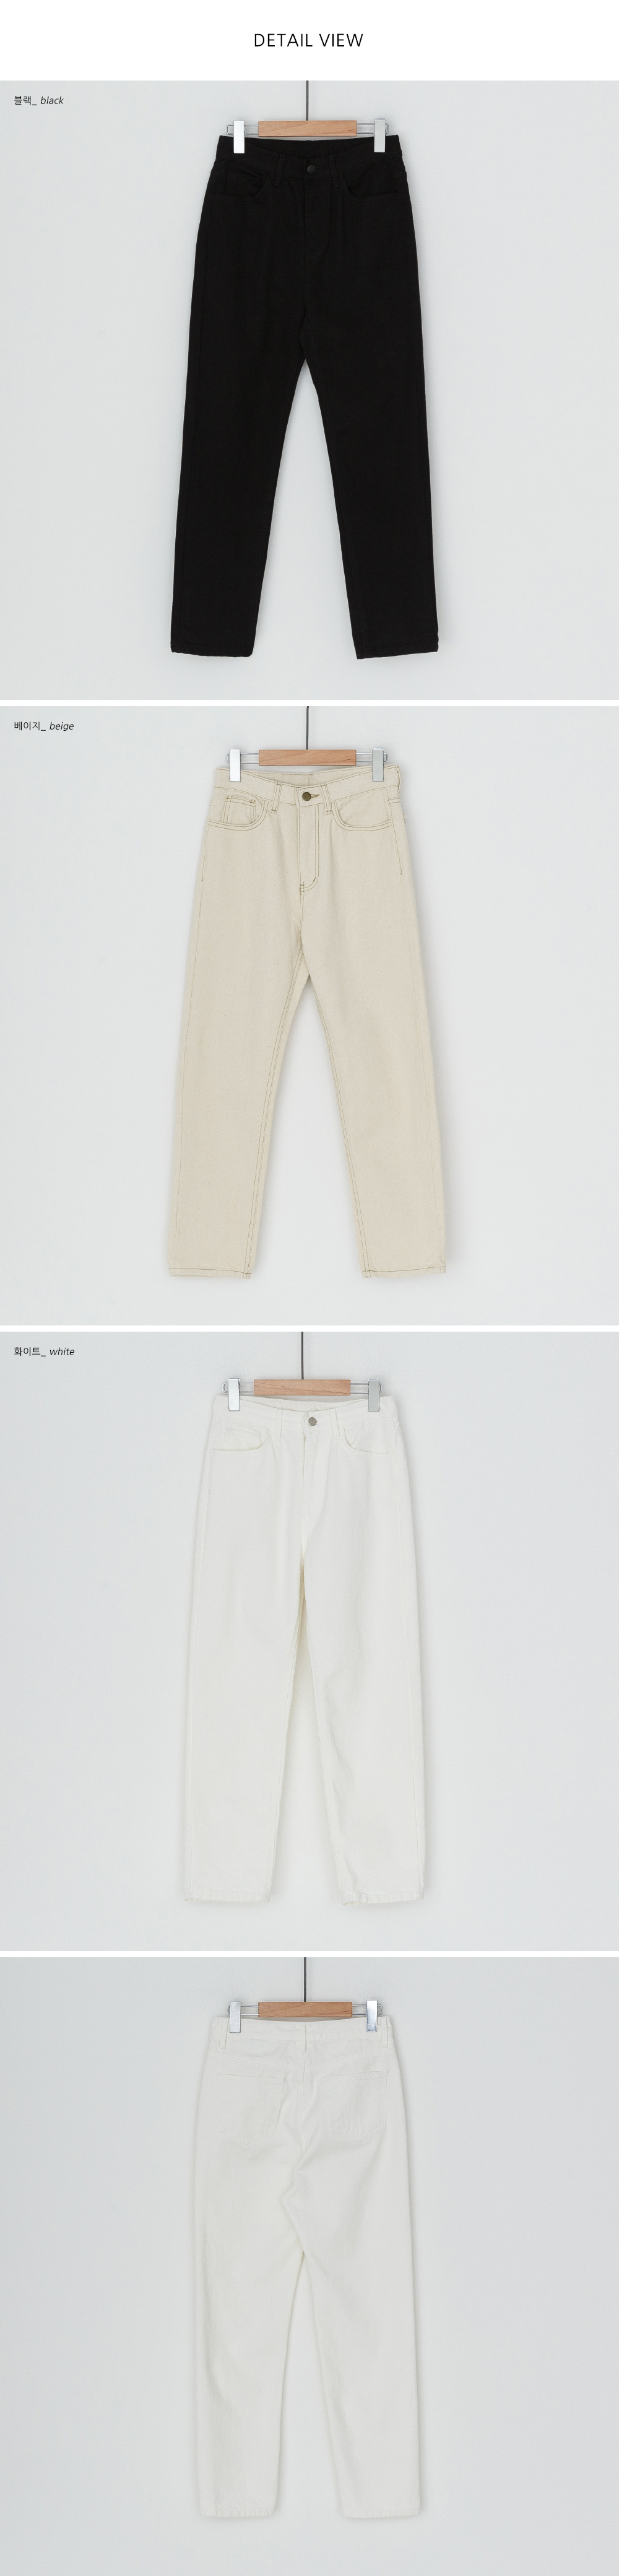 Straight-fit basic cotton pants